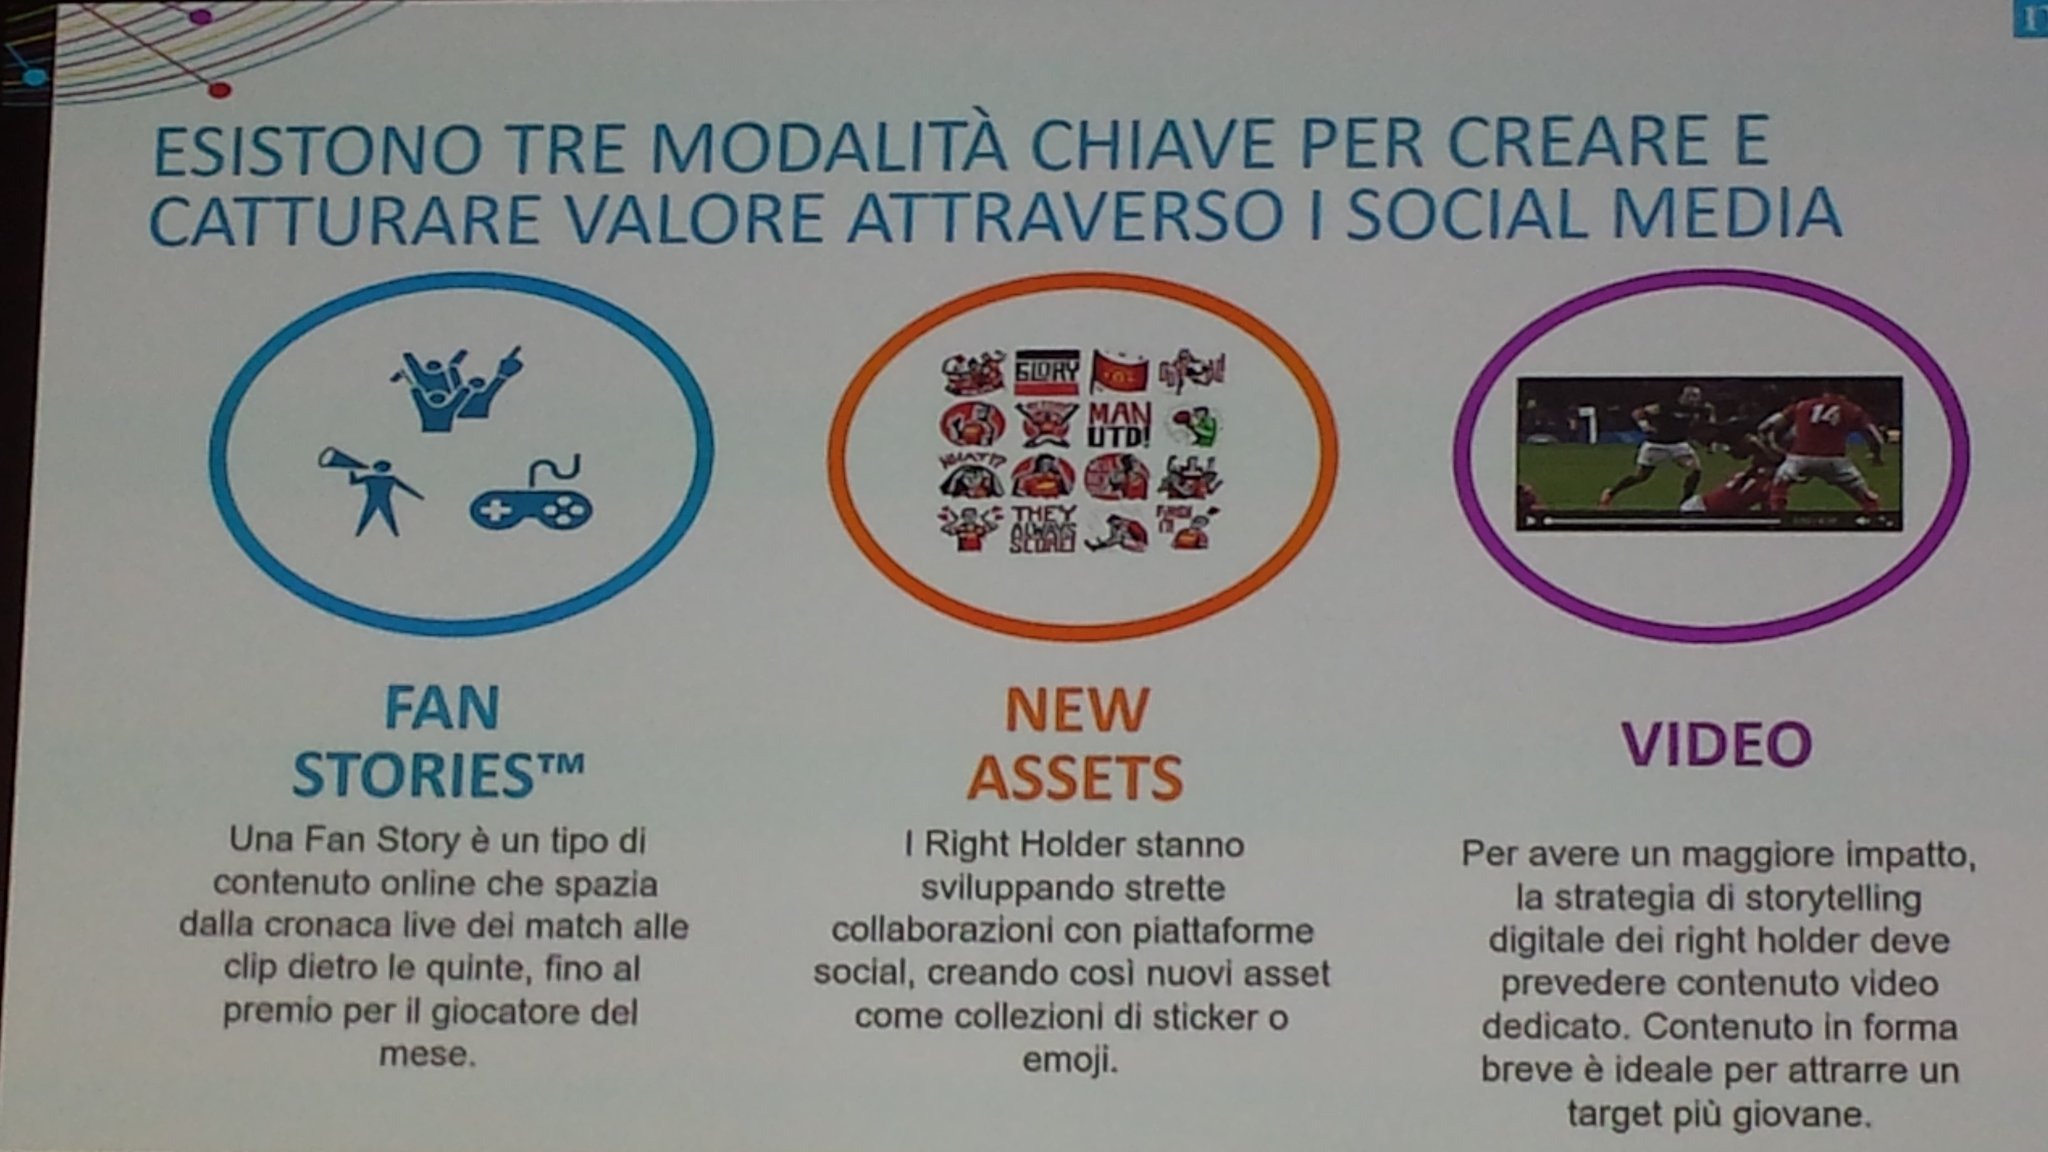 Fan stories, nuovi assets e video: la ricetta per creare valore attraverso i #socialmedia #ForumSport #SocialMediaMarketing https://t.co/OlrUMAVCOy